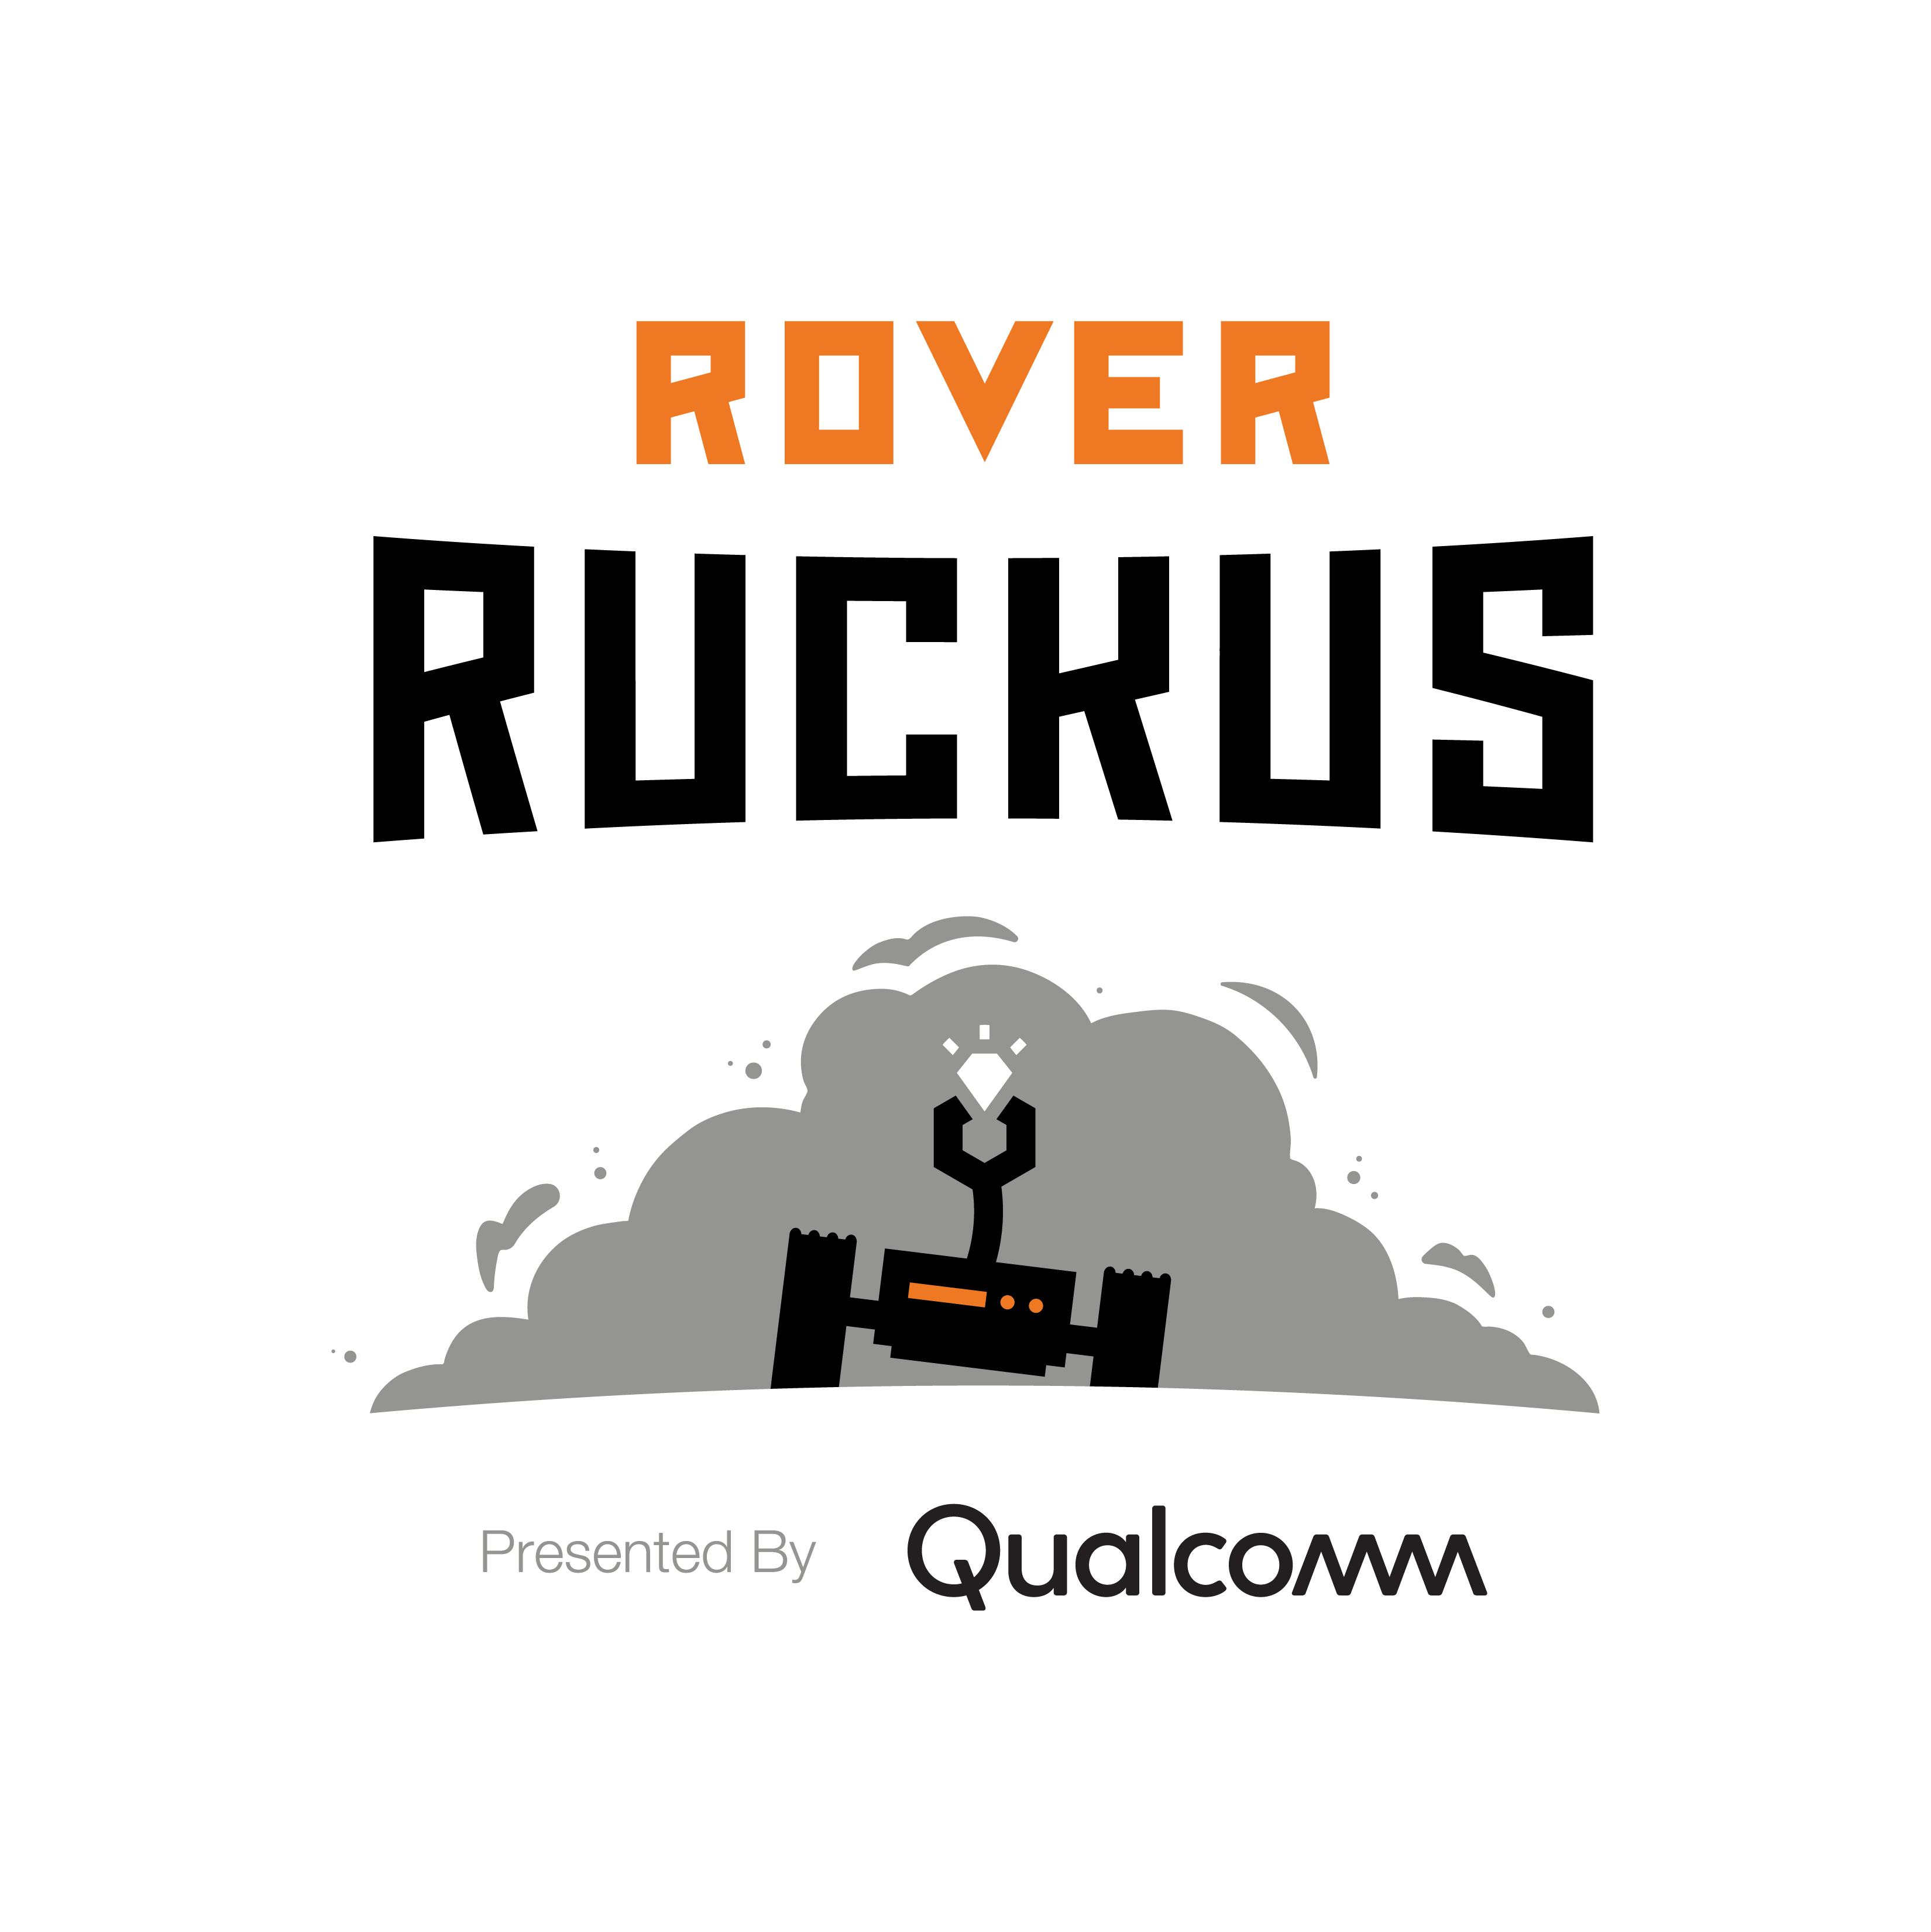 FIRST-RoverRuckus-logo full-color-sponsor